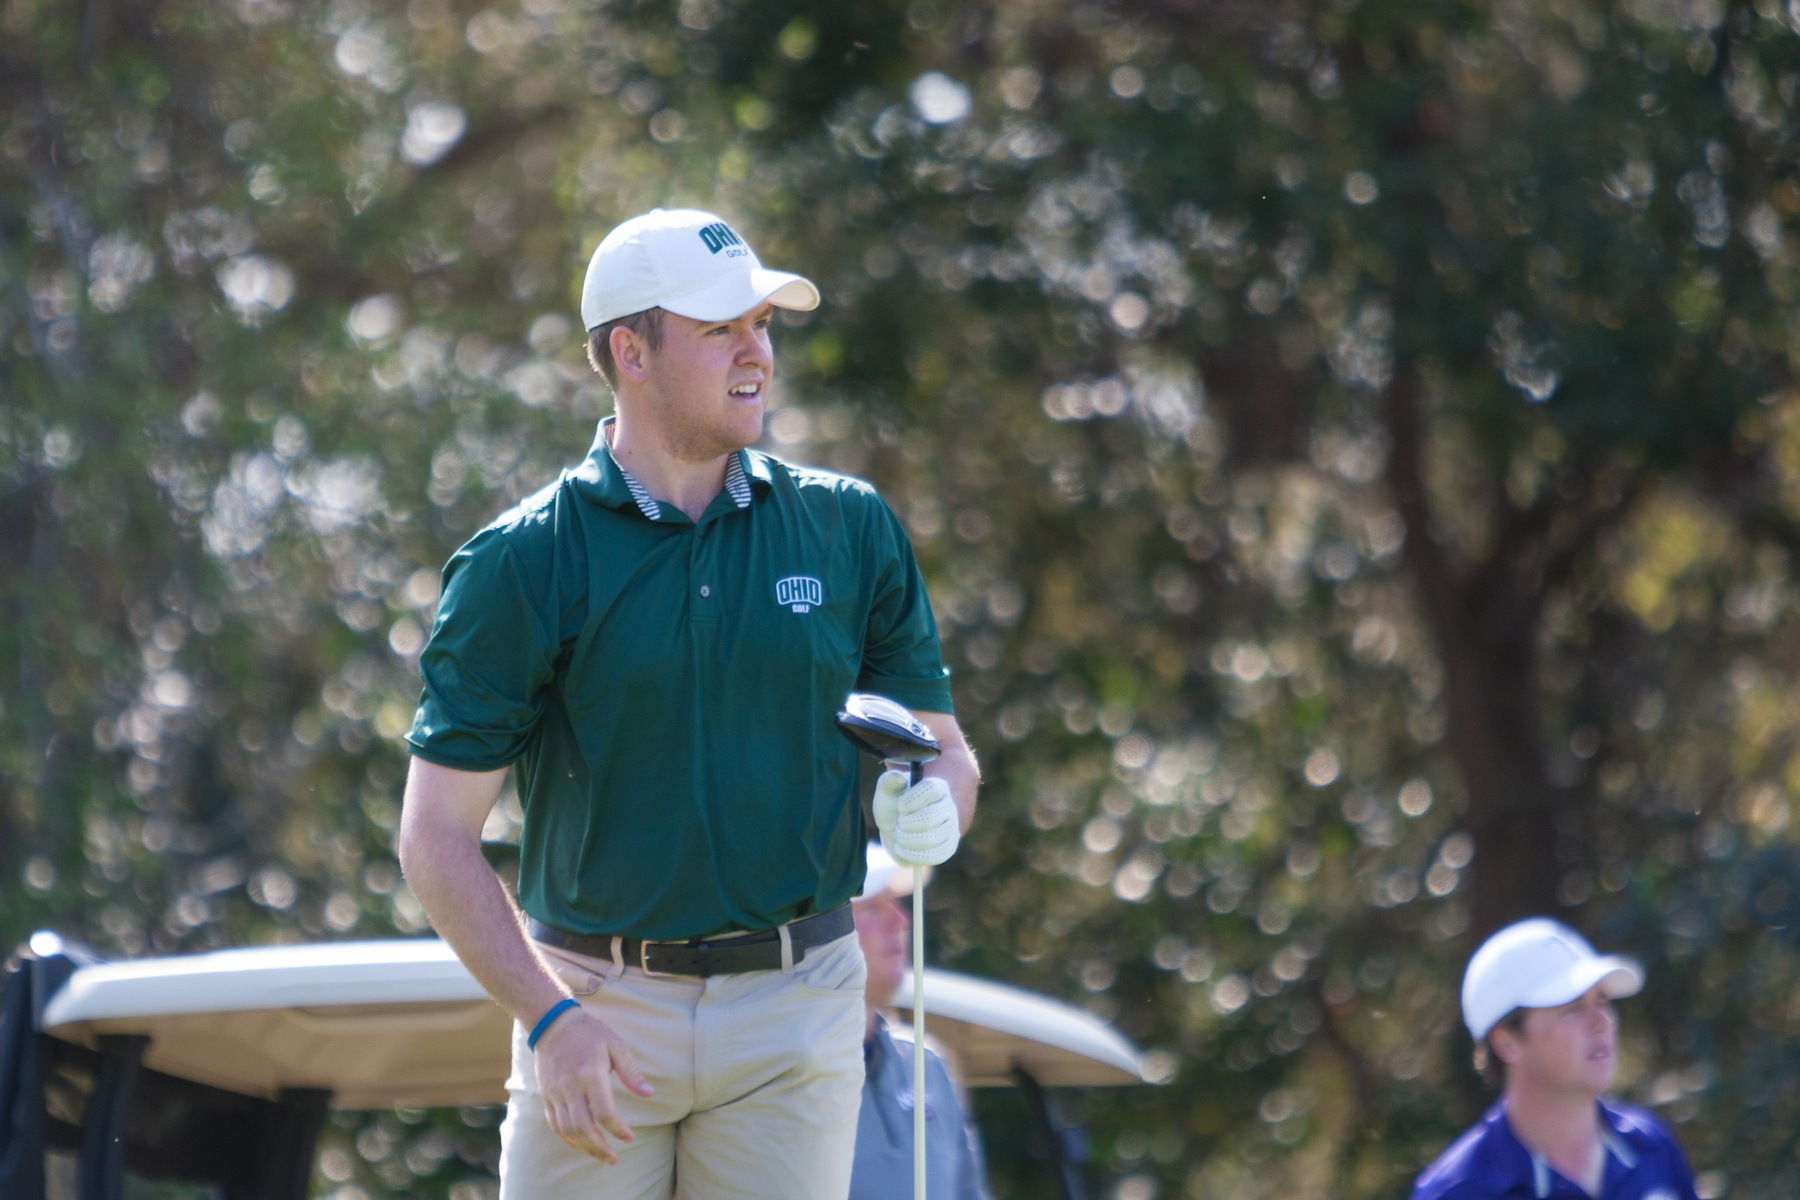 Ohio Men's Golf In Eighth Place After Two Rounds Of The Invitational At Savannah Harbor